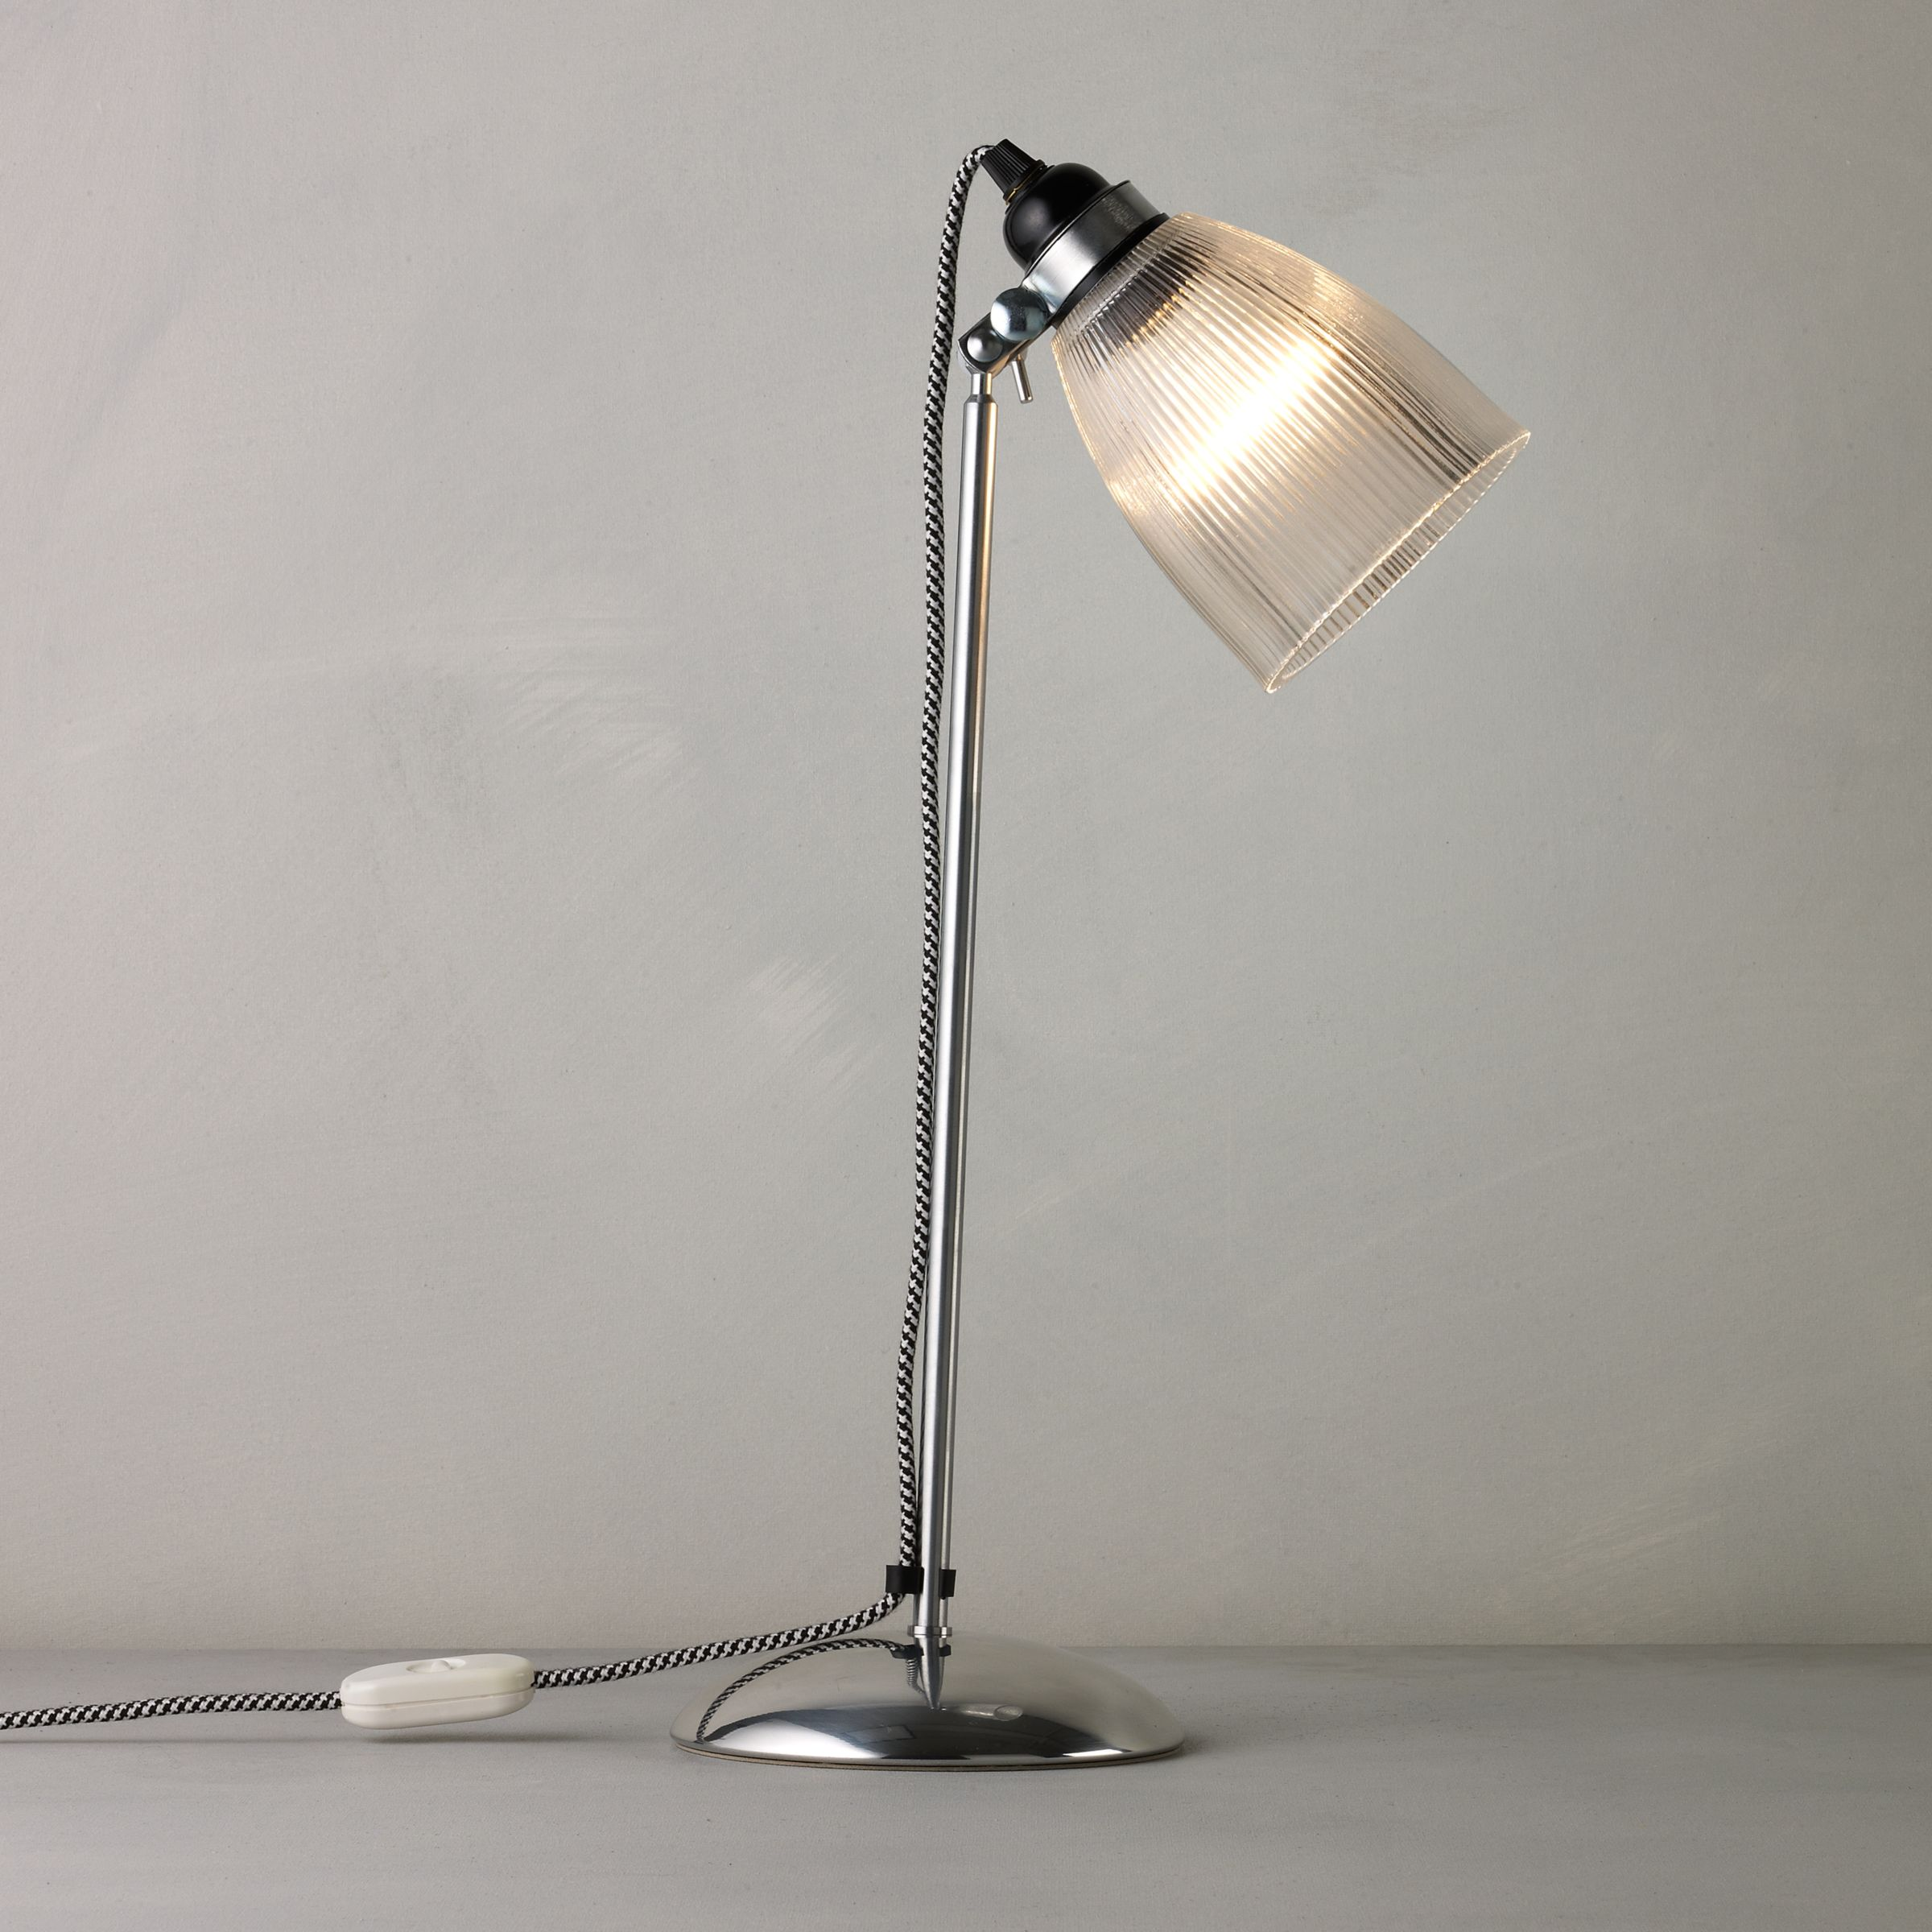 Original BTC Original BTC Primo Table Lamp, FT311